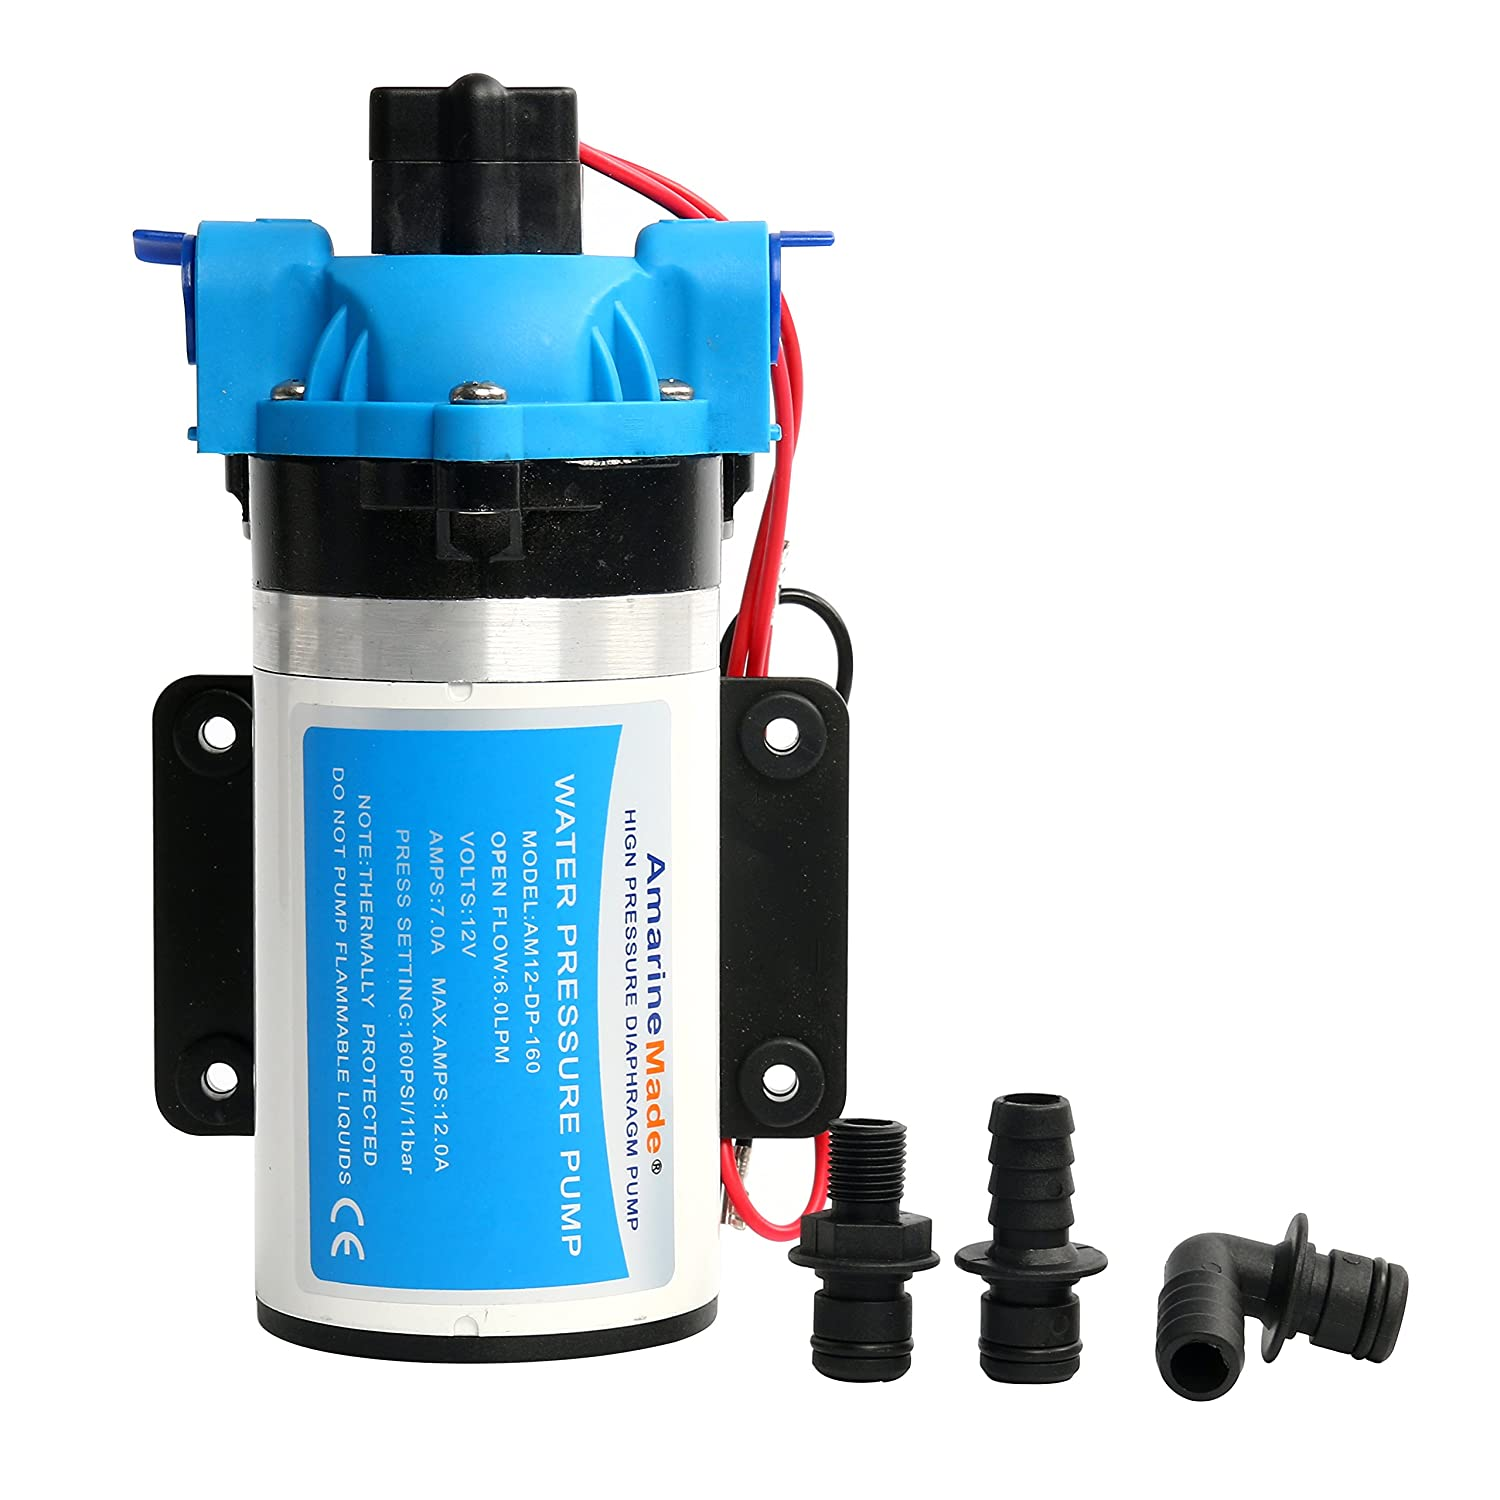 Amarine-made 12V Water Pressure Pump 6LPM AMPS 7A MAX.AMPS 12A Press Setting:160PSI//11bar Alfa Marine (shanghai) Co. Ltd